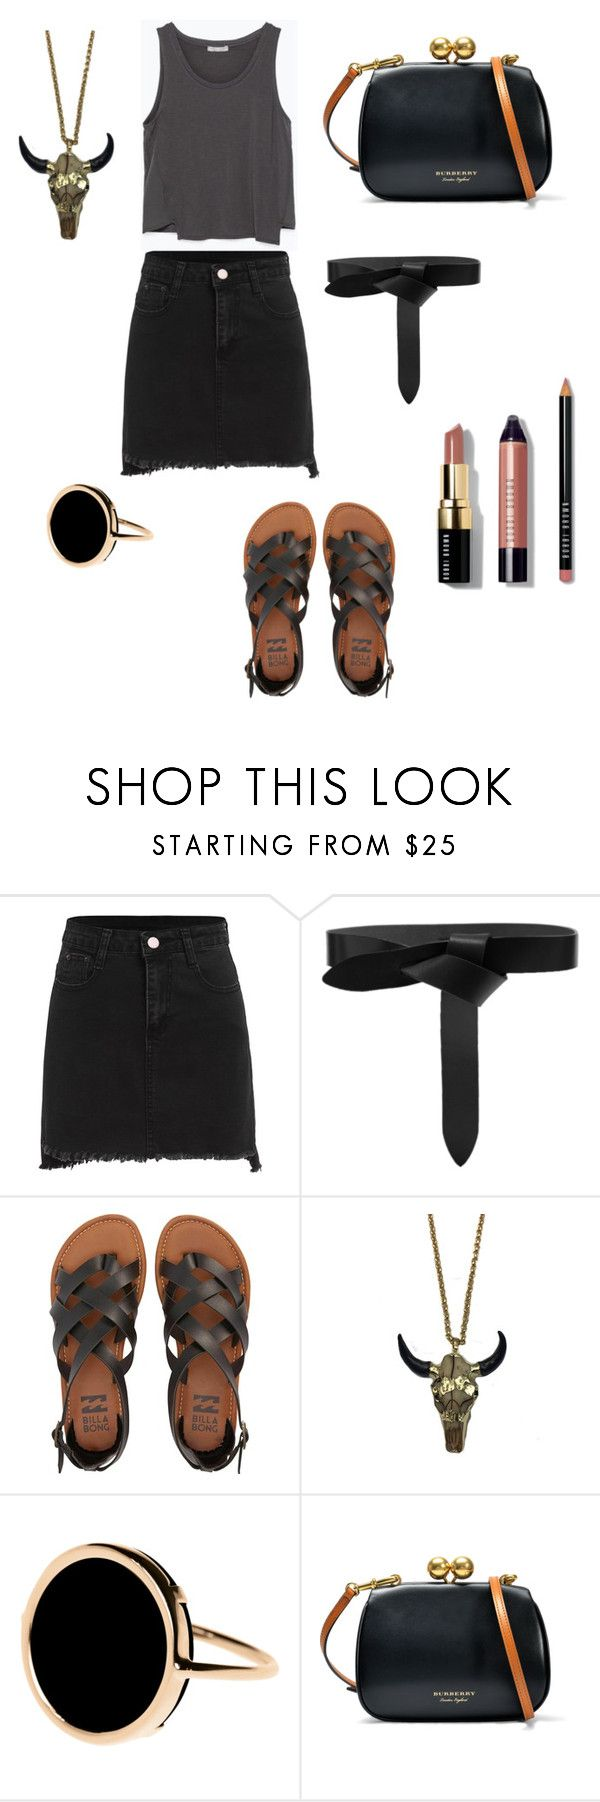 """""""Let's do grey, dark, & black"""" by sammanthap ❤ liked on Polyvore featuring Isabel Marant, Billabong, Zara Taylor, Ginette NY, Burberry and Bobbi Brown Cosmetics"""